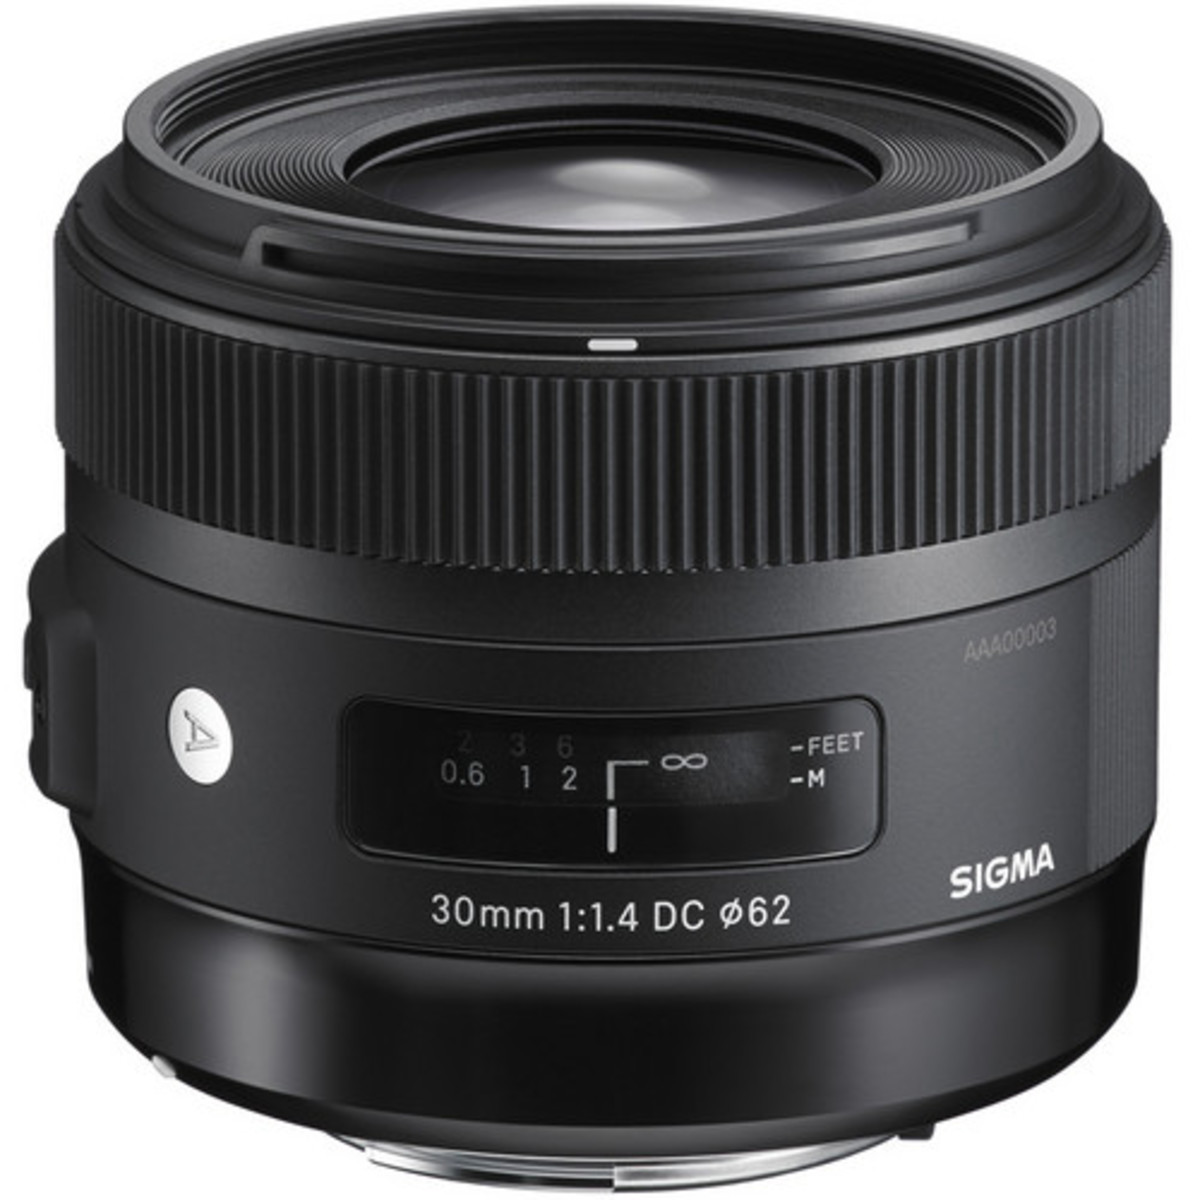 Sigma 30mm f/1.4 DC HSM Art Lens - [For Nikon] (Parallel imported)